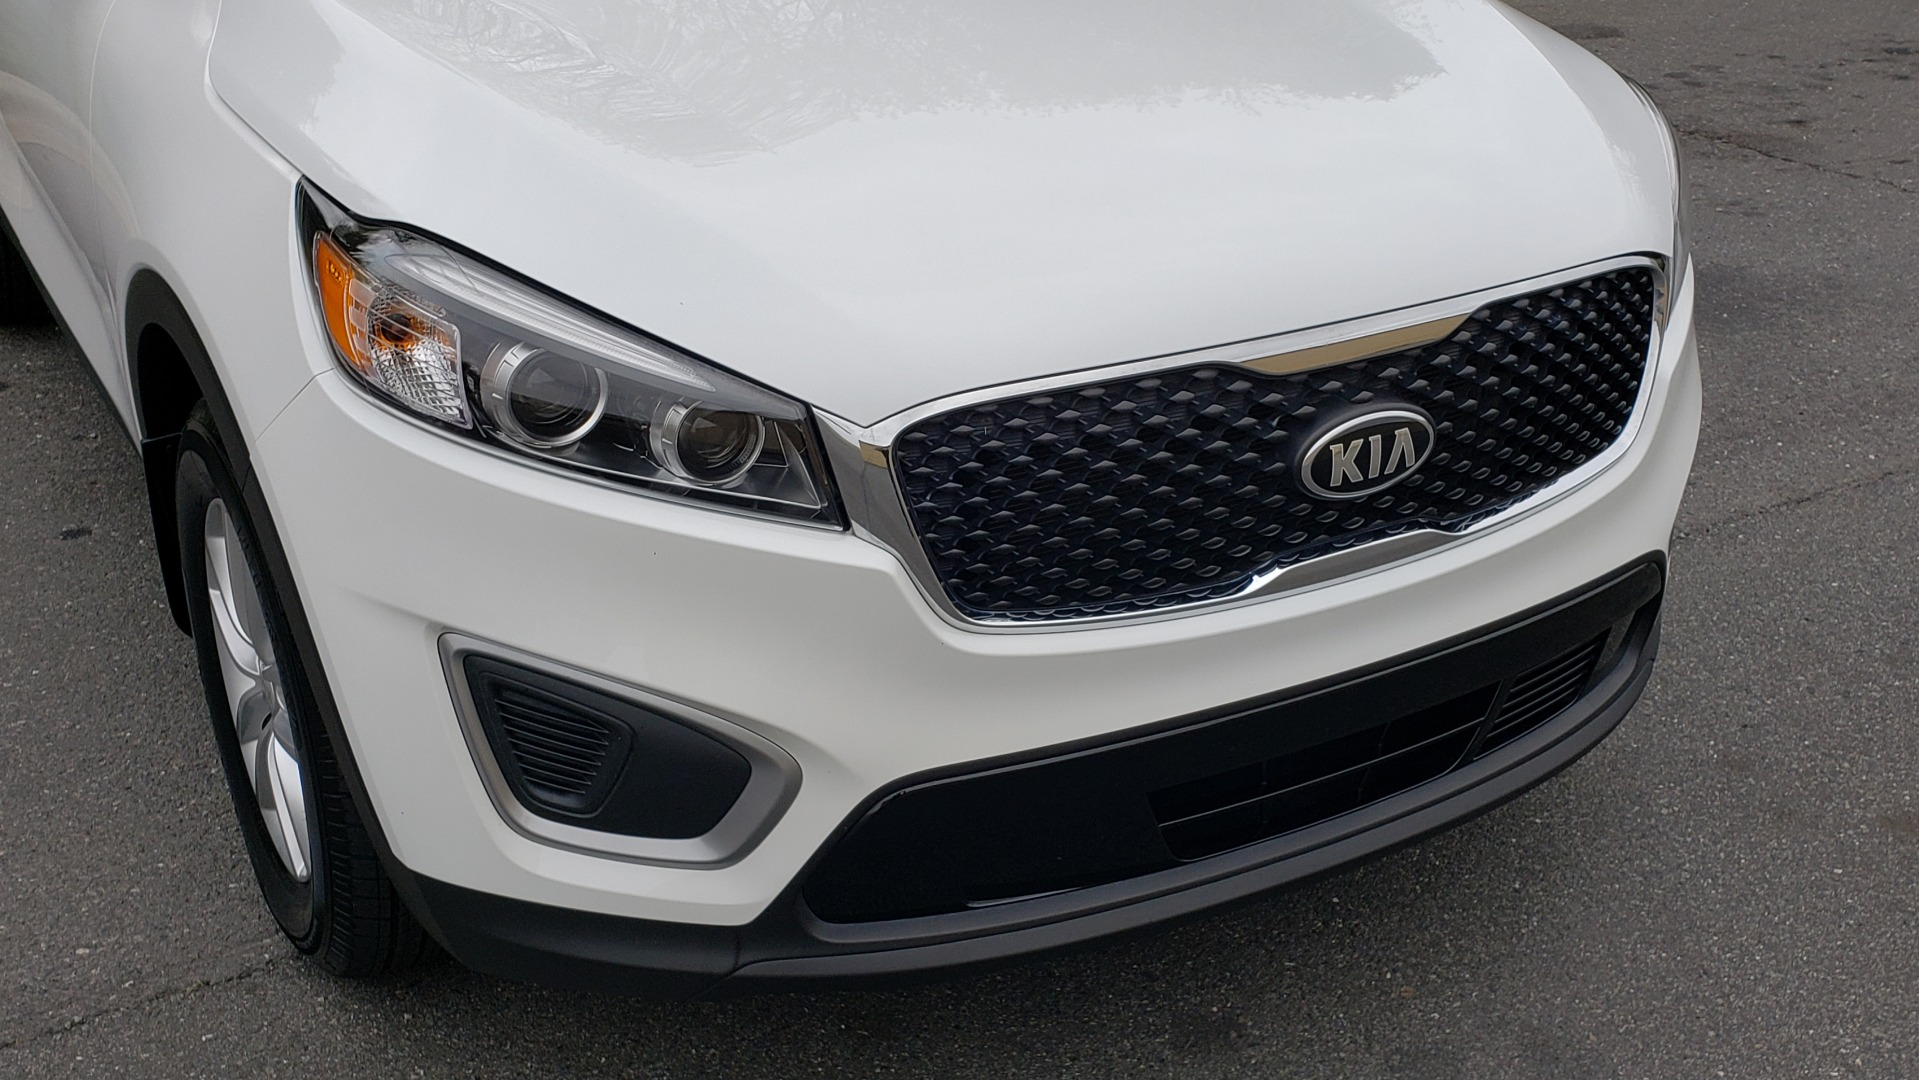 Used 2017 Kia SORENTO LX CONV PKG / FWD / ADVANCED TECH / 3-ROW for sale Sold at Formula Imports in Charlotte NC 28227 25